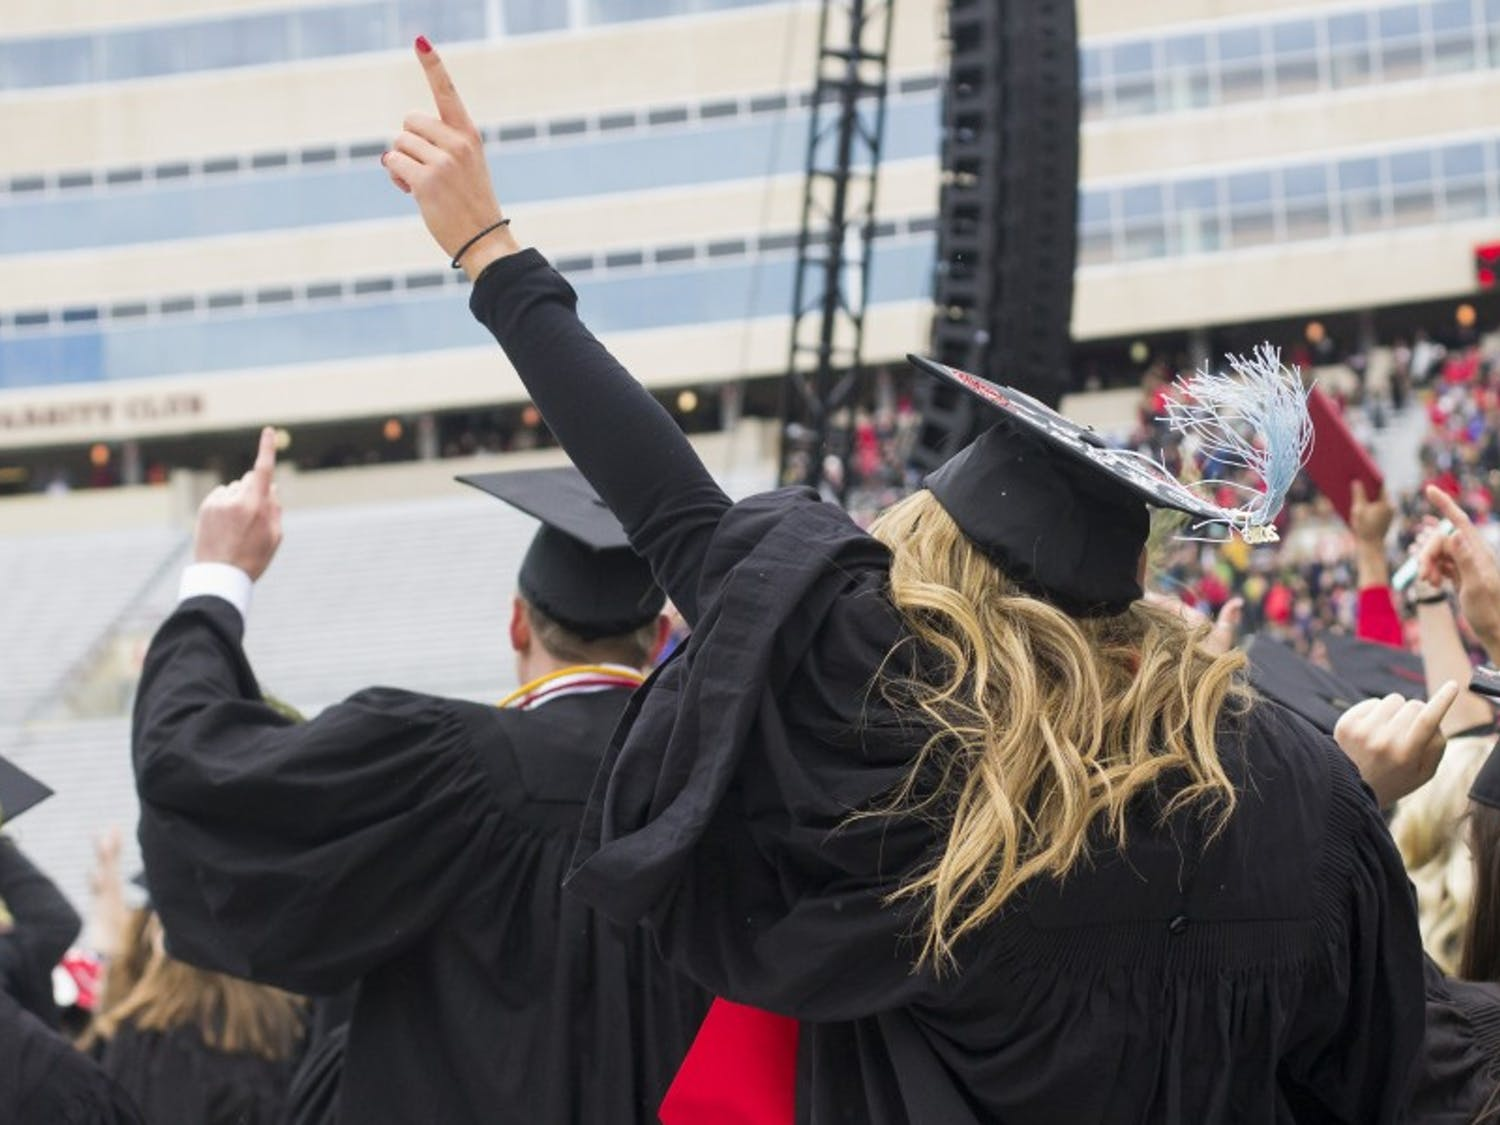 The class of 2016 celebrated their graduation at Camp Randall Stadium. Seahawks quarterback and former Badger Russell Wilson gave the Commencement speech.